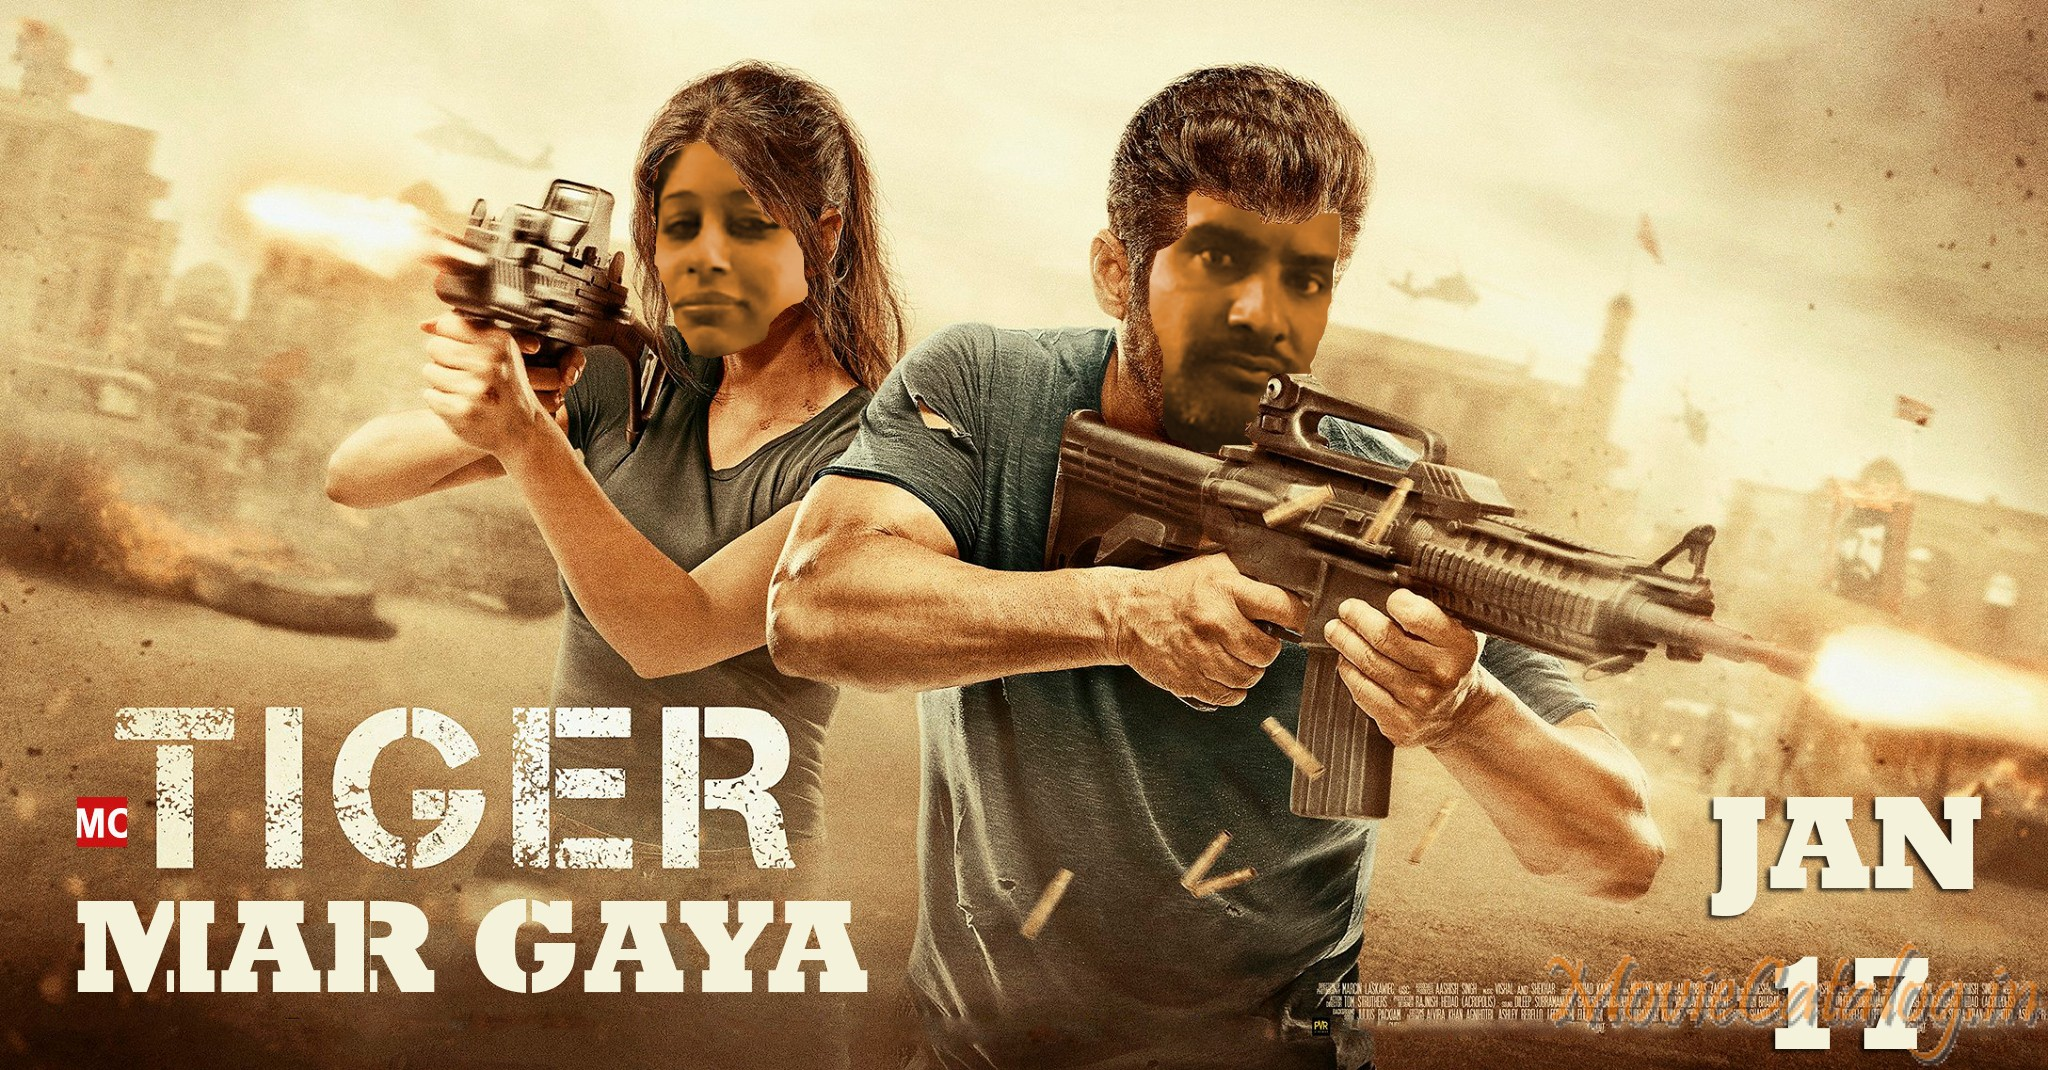 Tiger Mar Gaya Poster - Short film